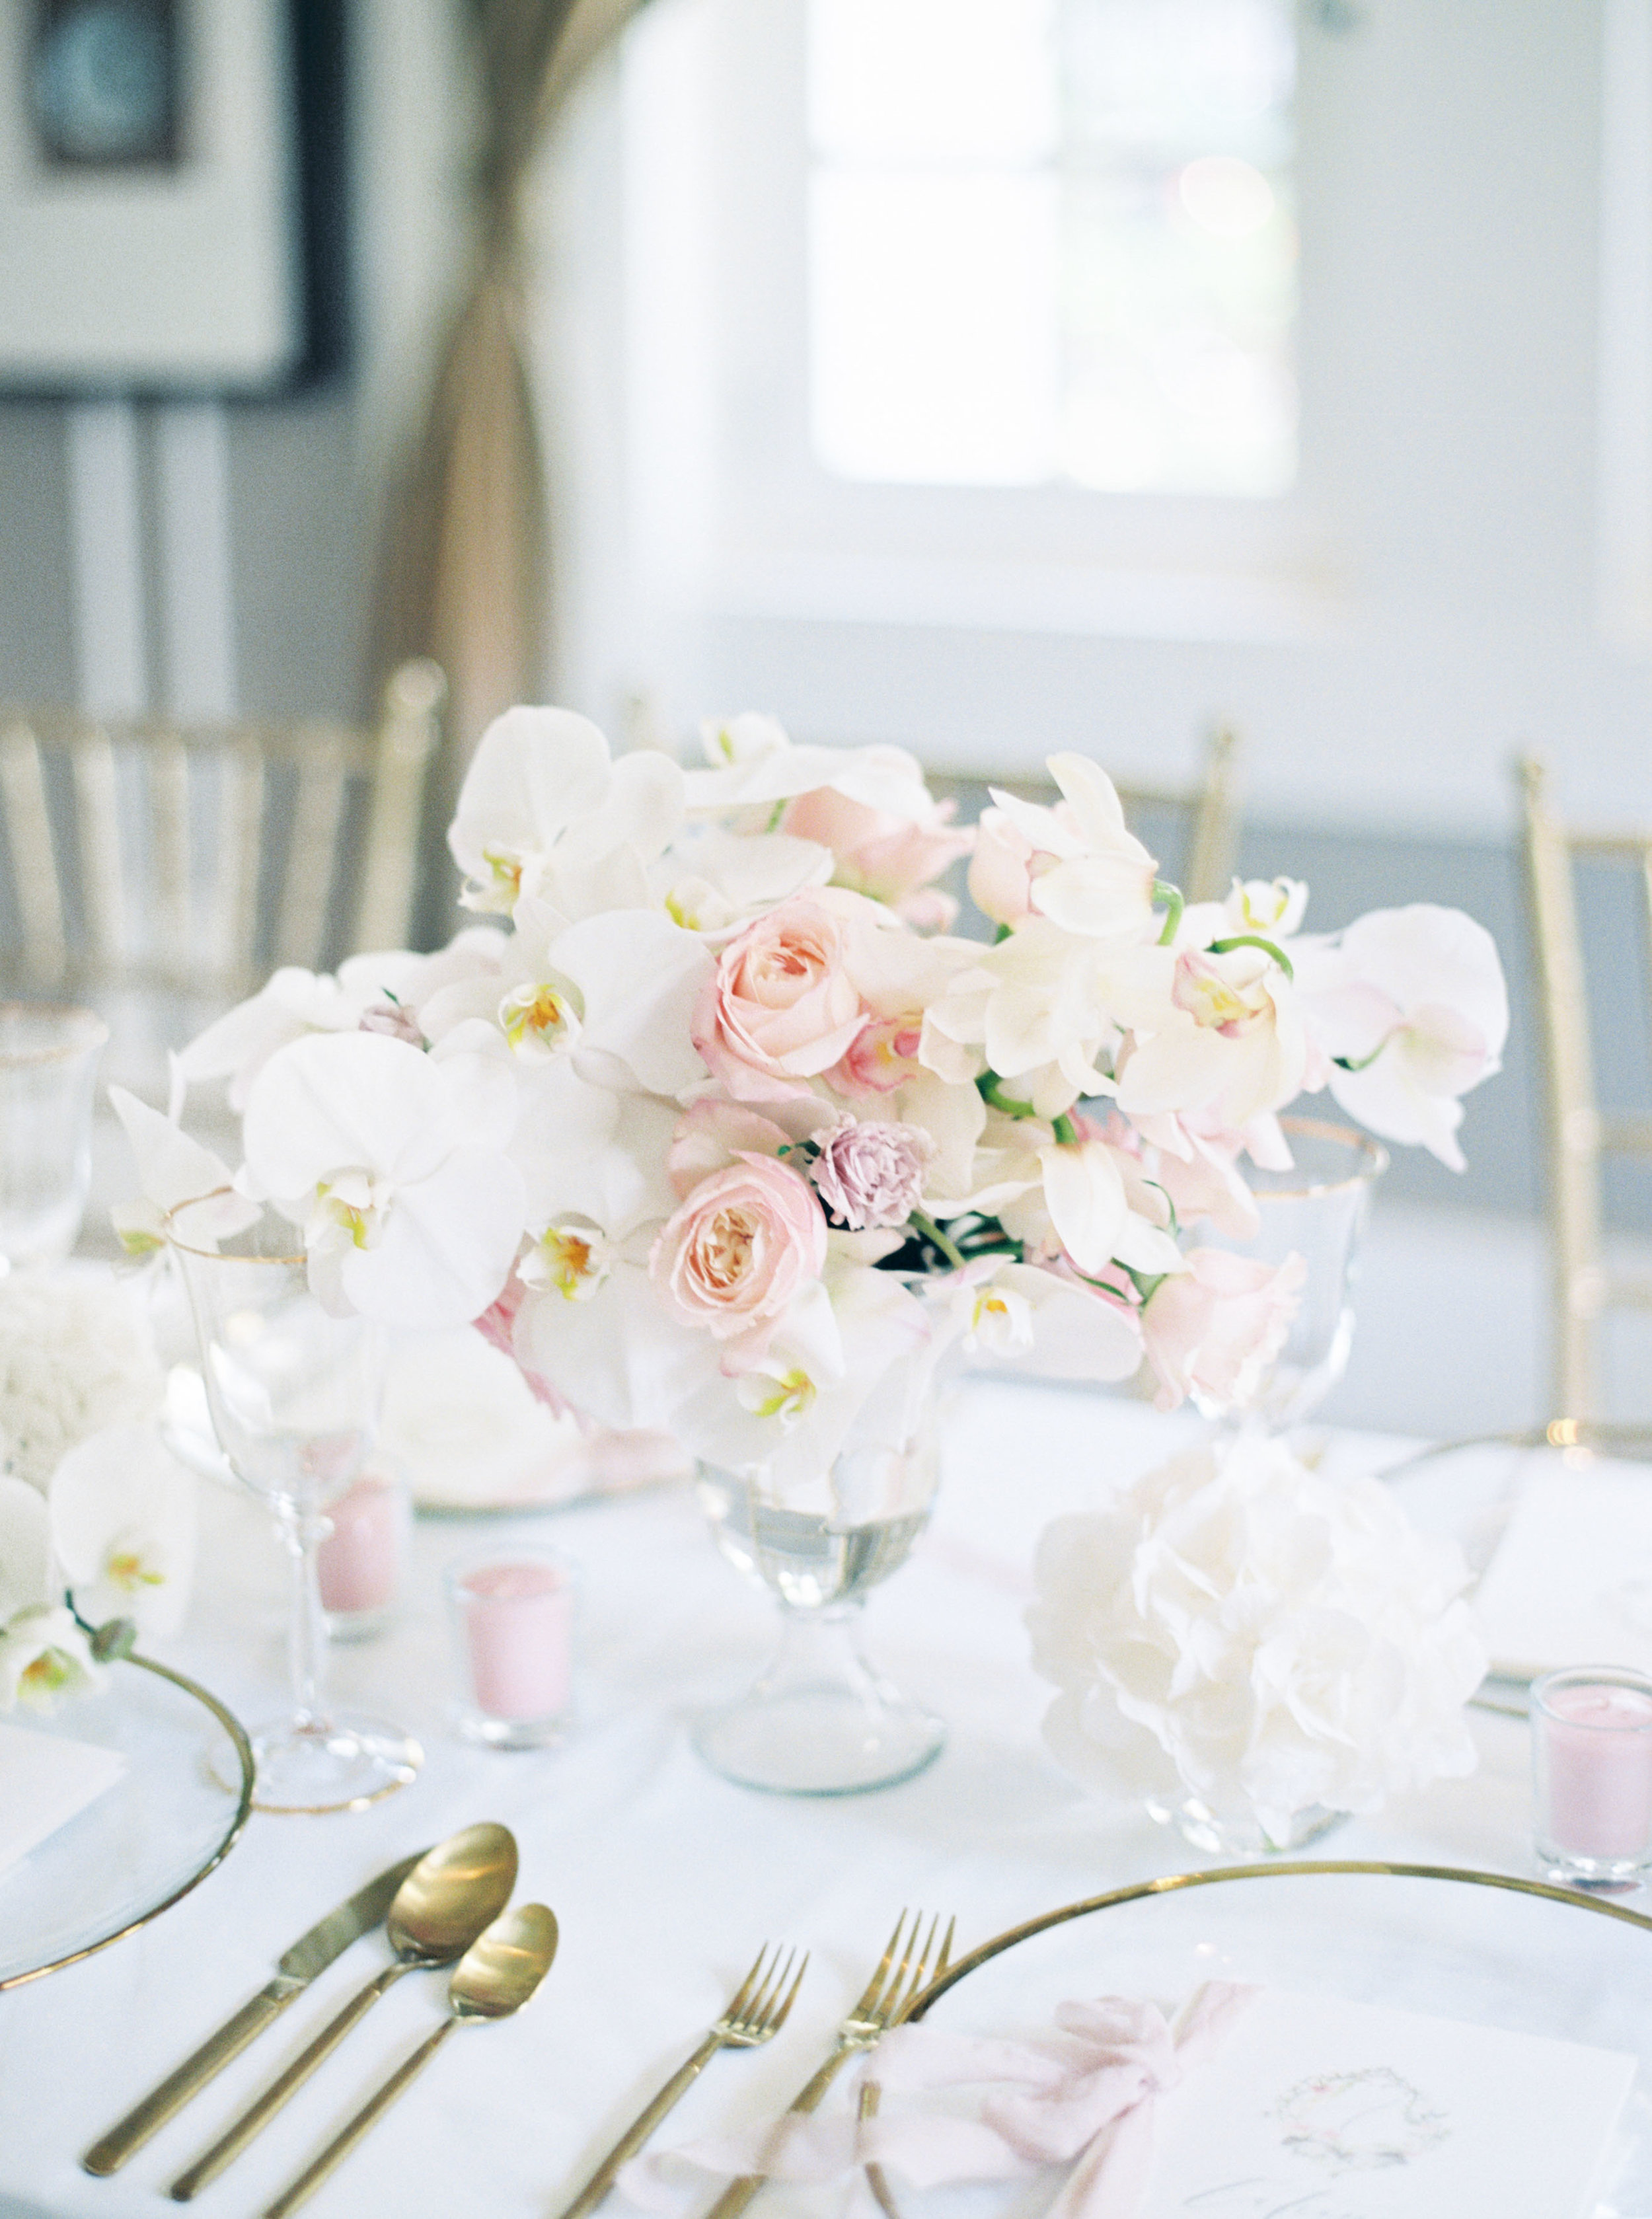 Jakarta-Elegant White Blush Baby Shower-Dimitri Events-Studio June Film Photography & Styling-15.jpg